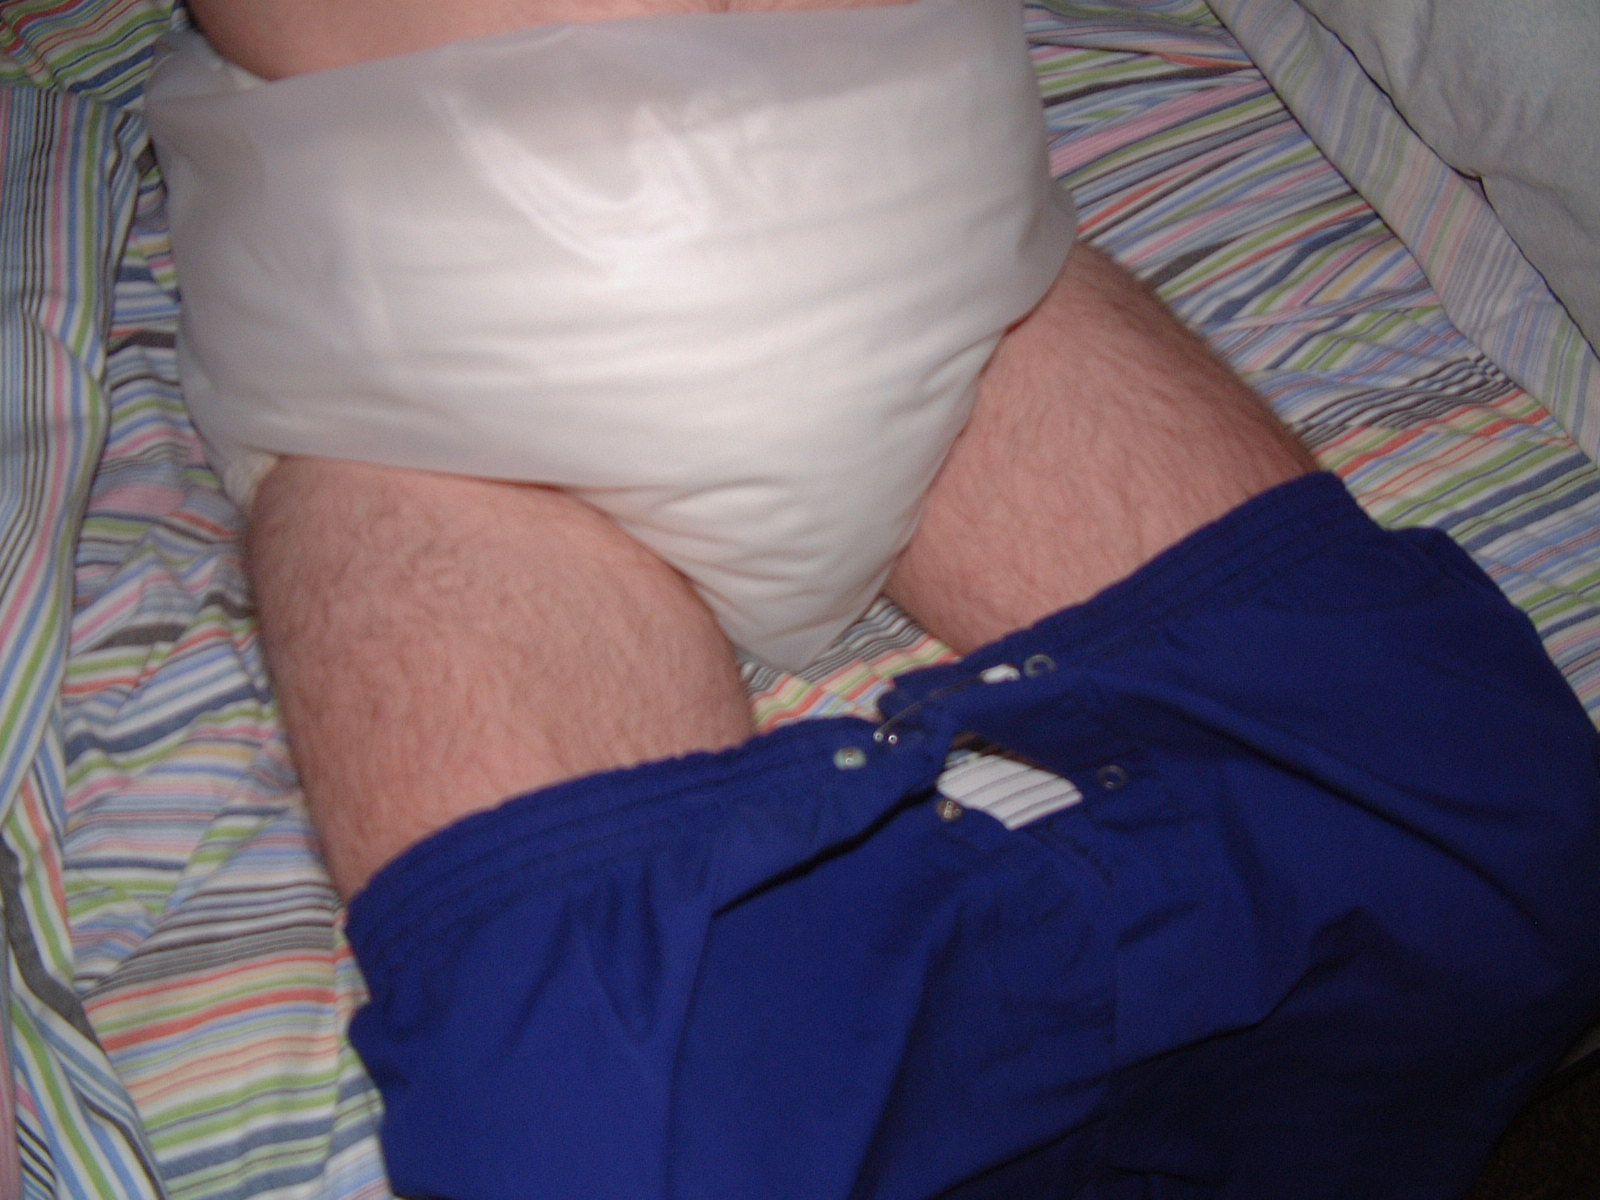 getting ready for bed with a thick cloth diaper on